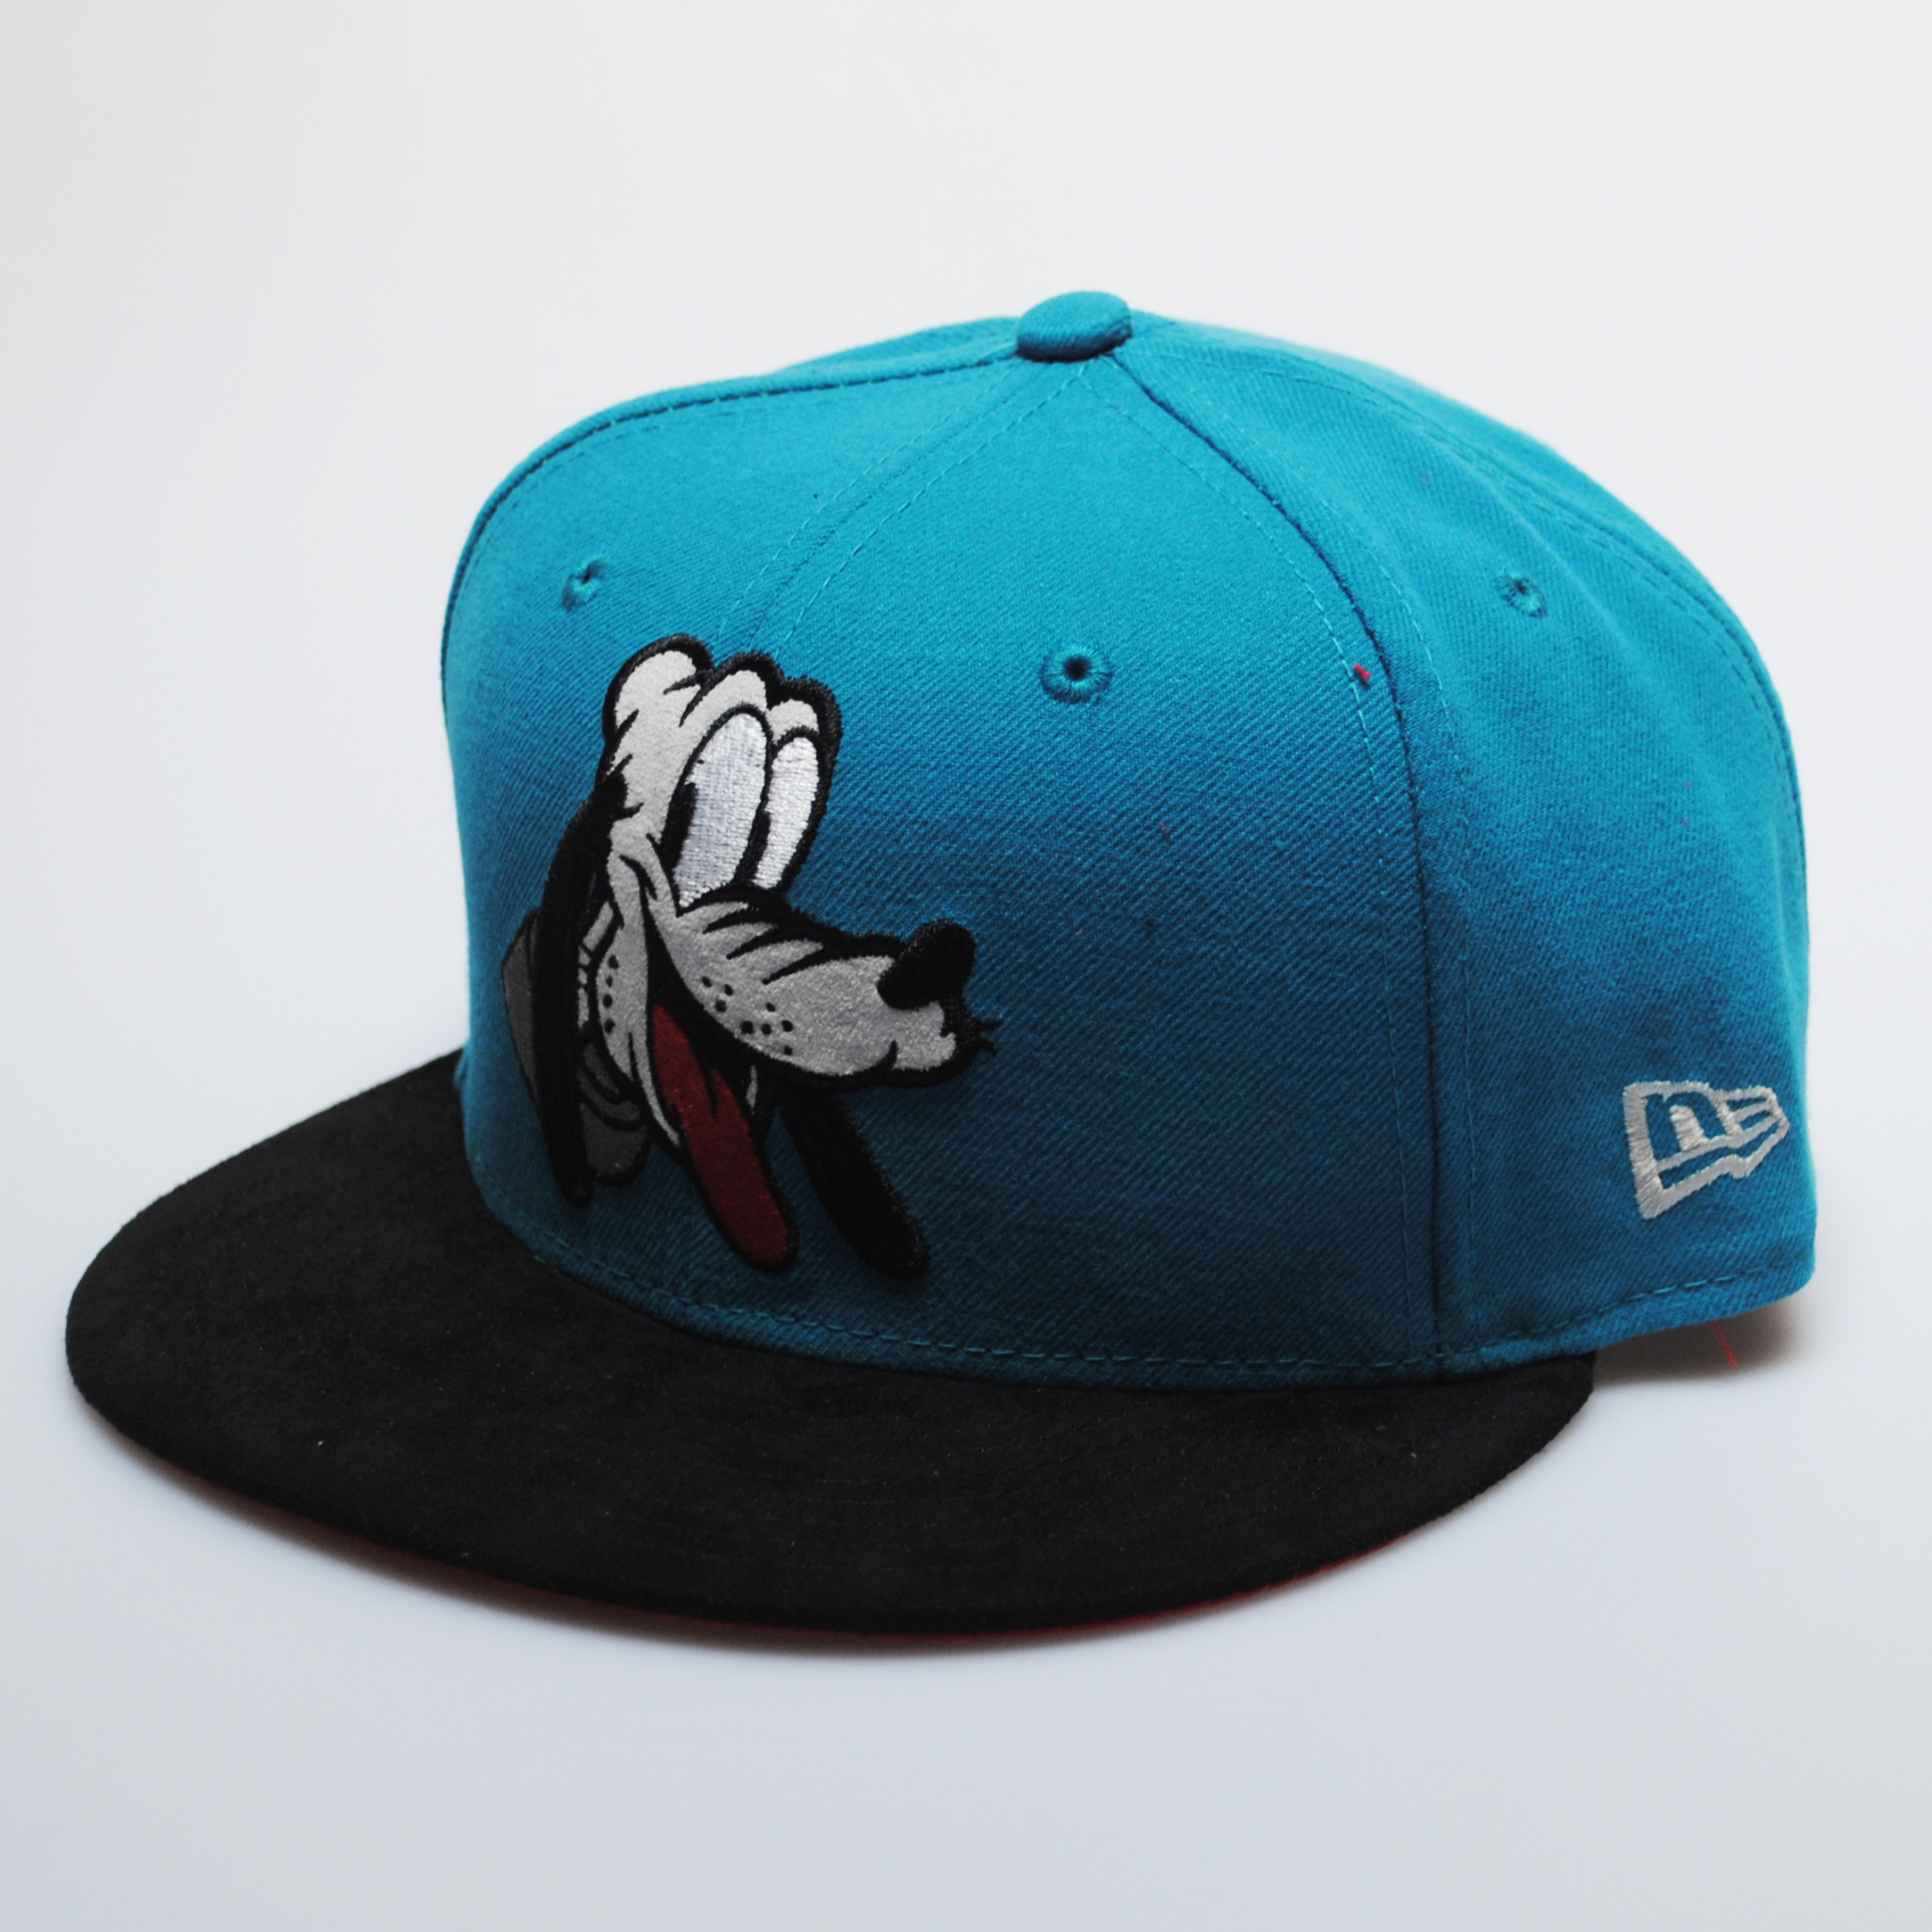 New Era 9fifty Retro Disney Pluto Character Sky Blue Black